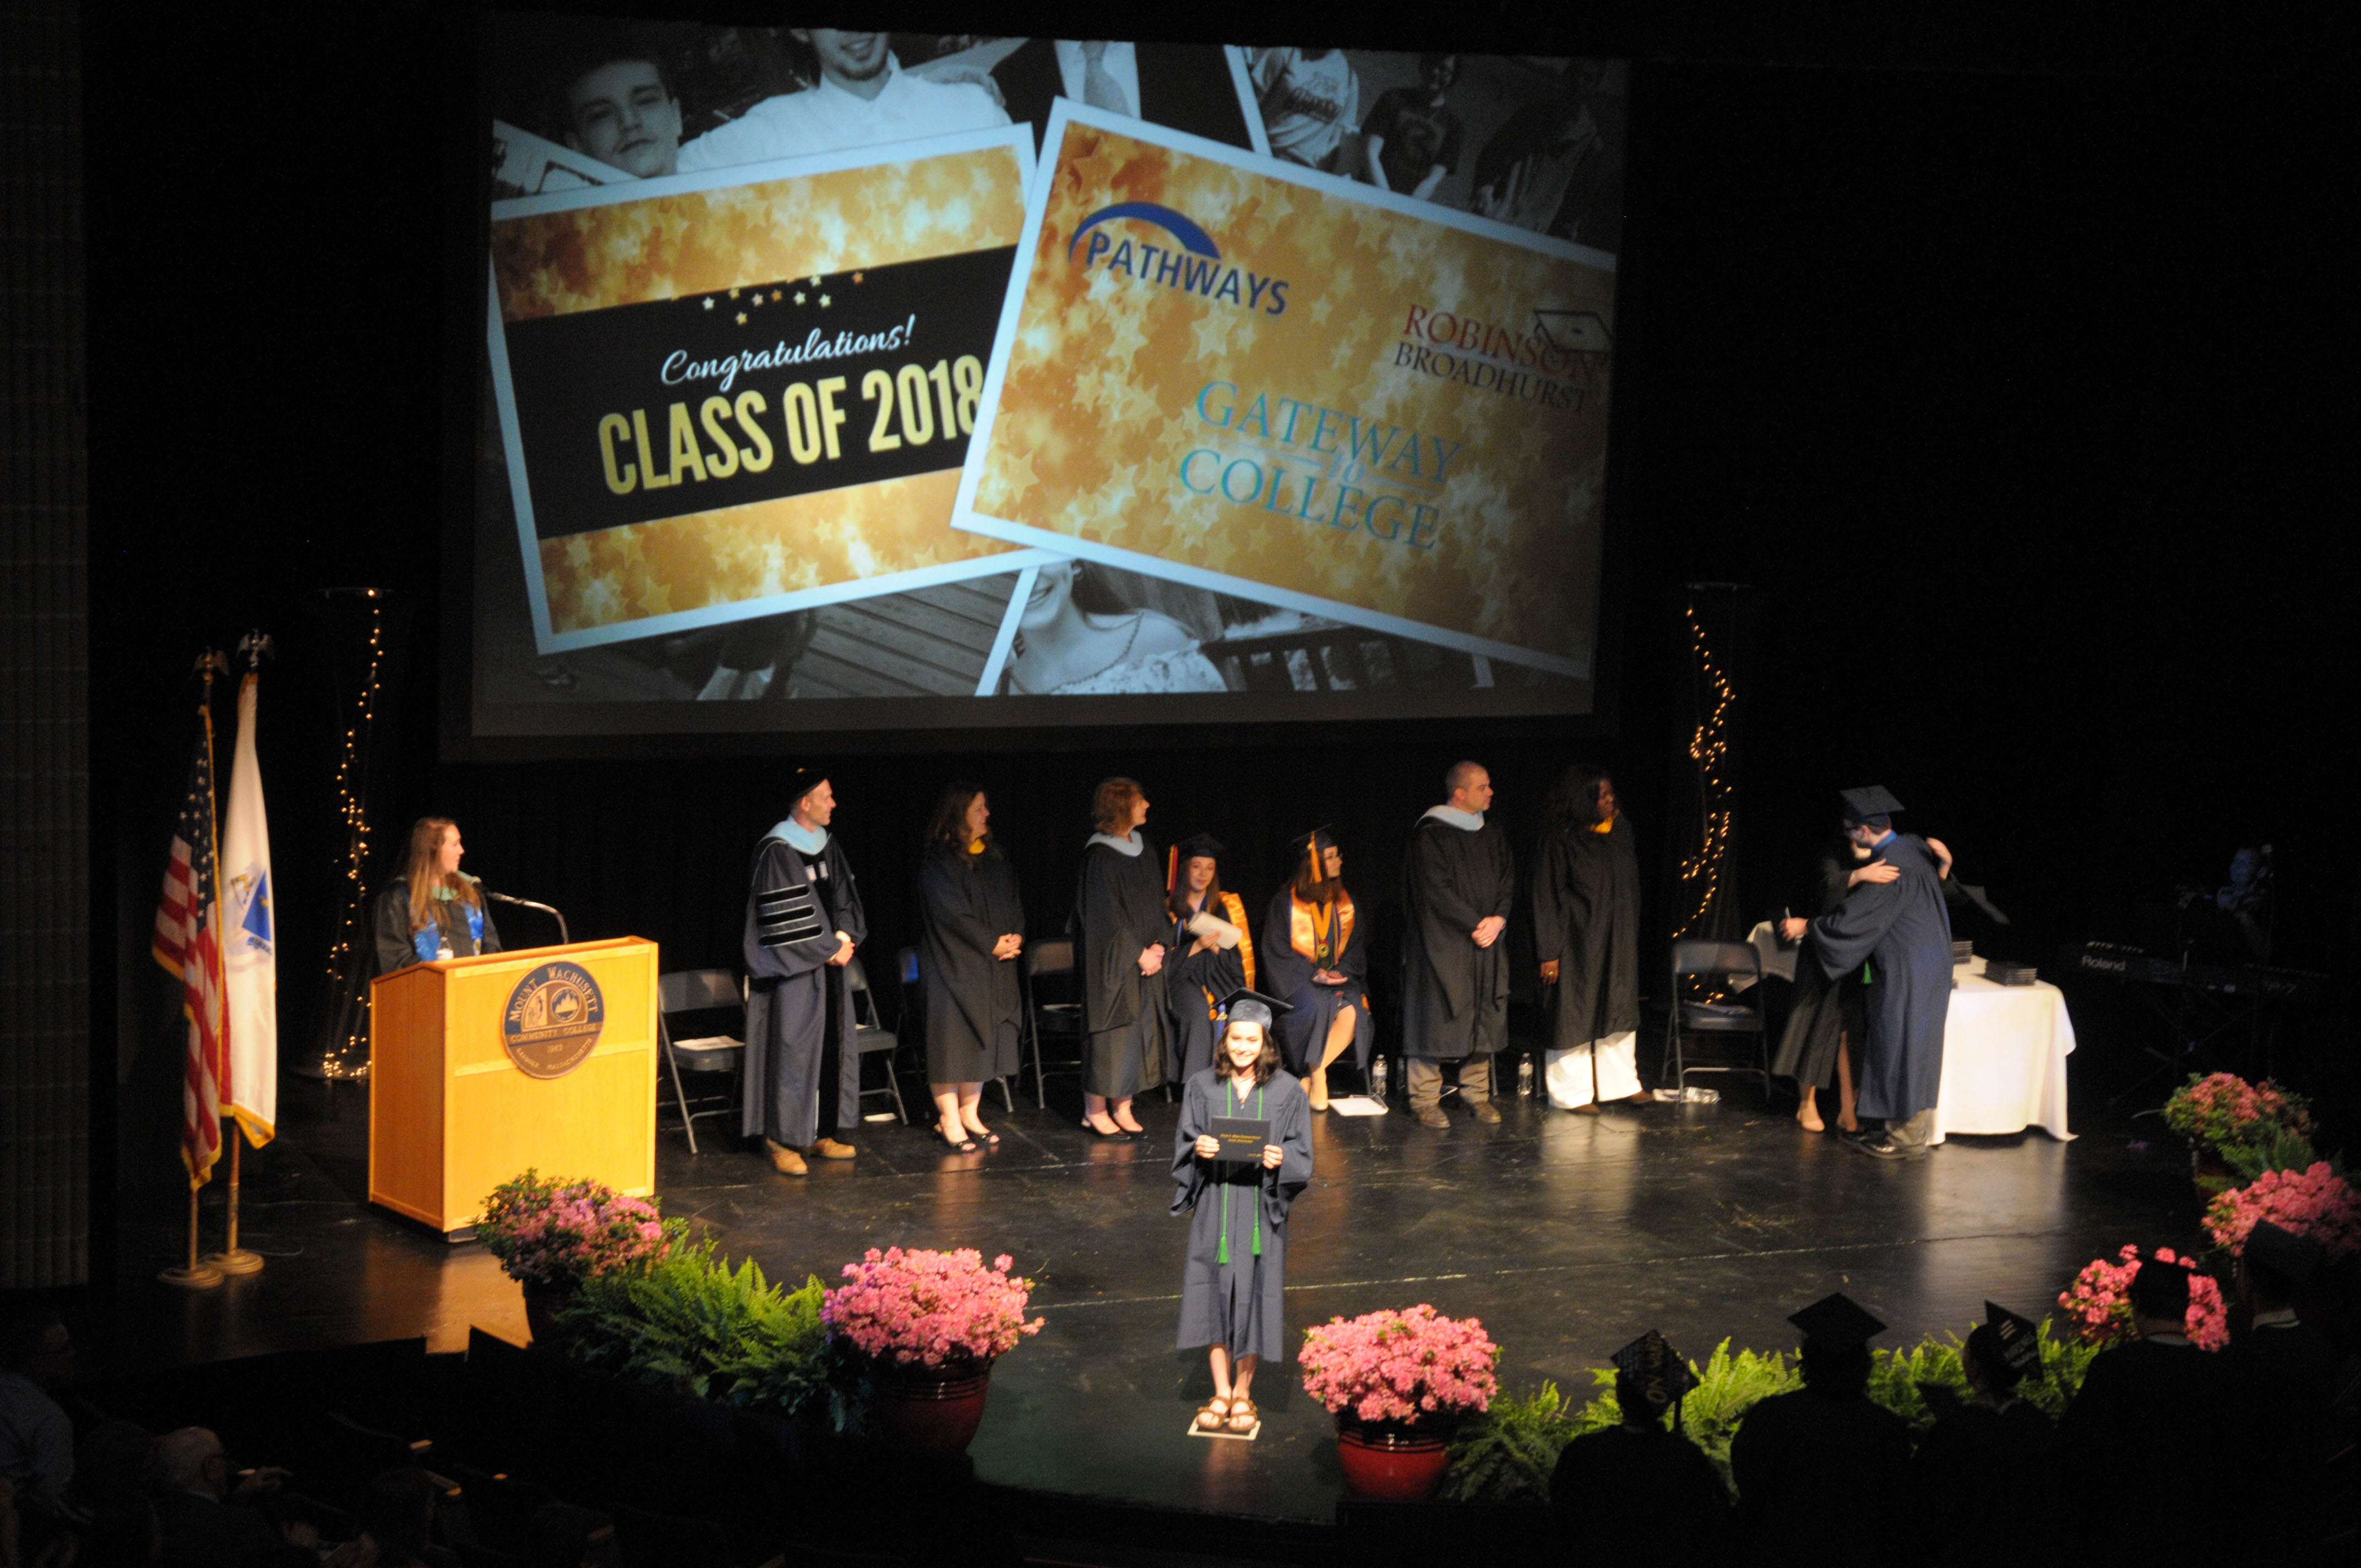 A student holds her diploma on stage with other people standing at the back of the stage.